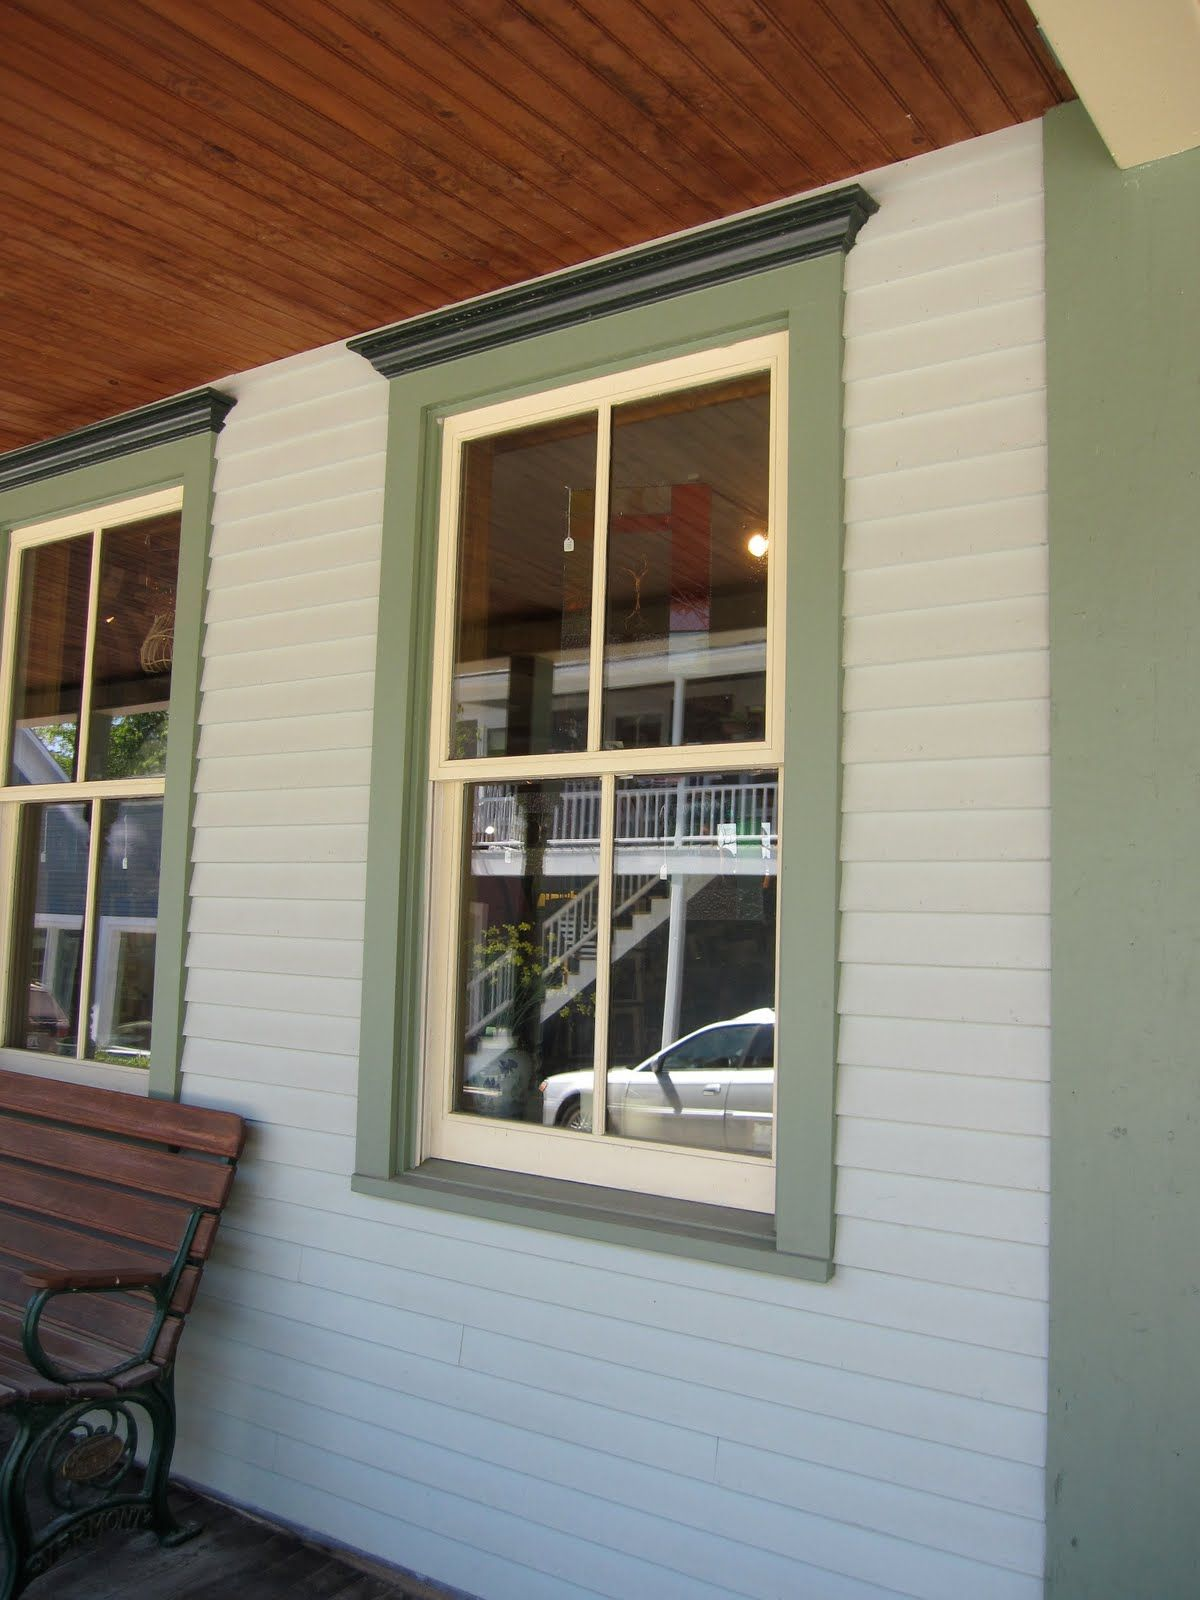 Exterior window trims on pinterest window moldings exterior windows - Window Trim Exterior Here S One I Liked